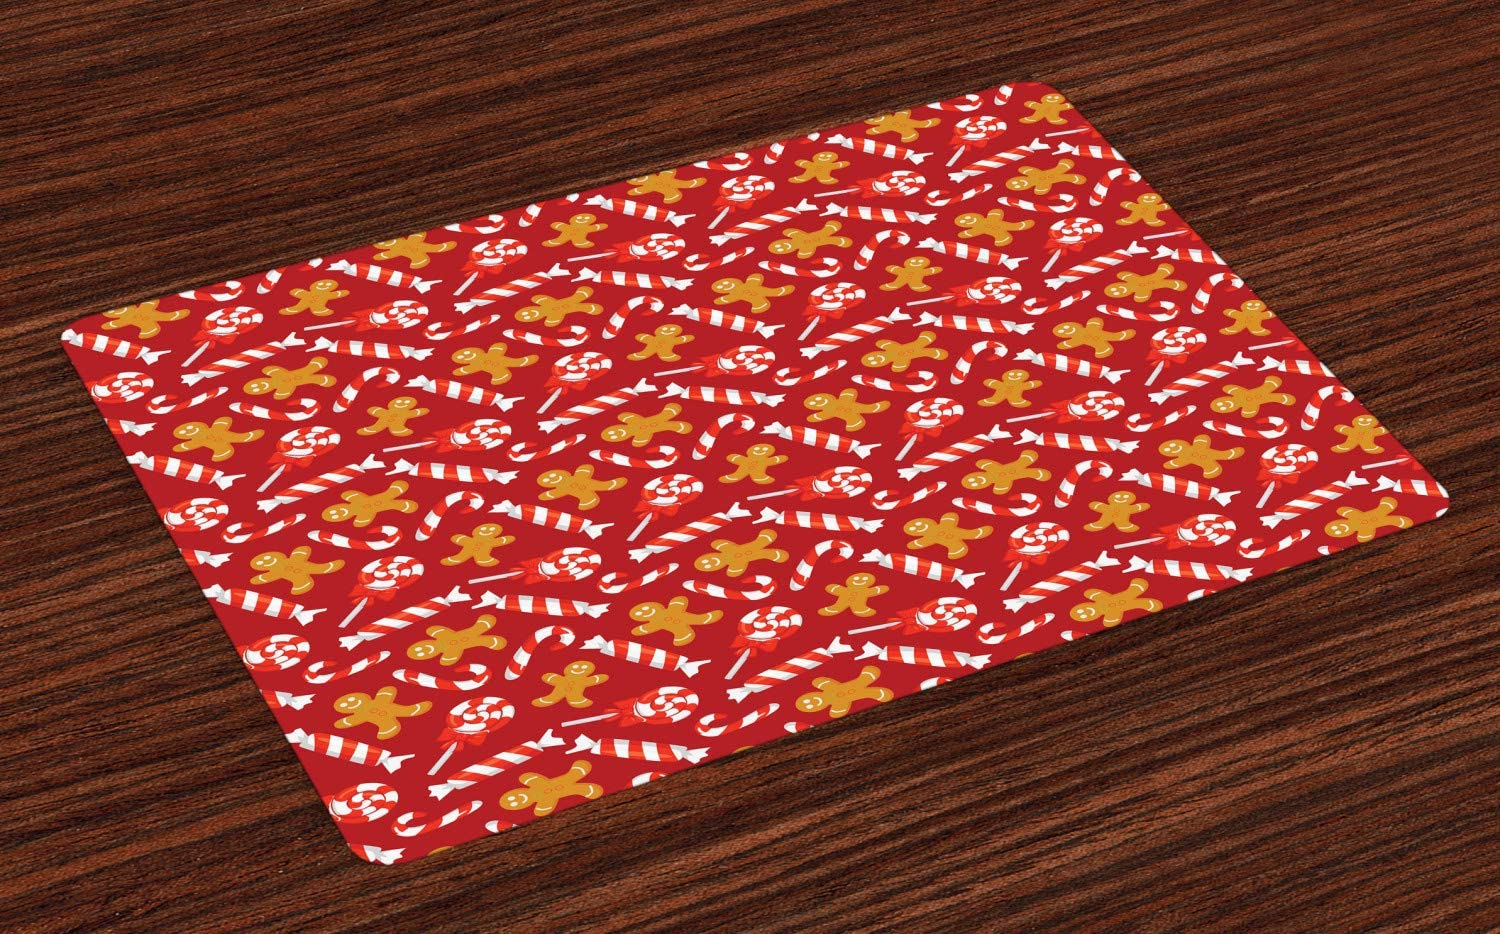 Lunarable Candy Cane Place Mats Set of 4, Gingerbread Man and Sweets Traditional Christmas New Year, Washable Fabric Placemats for Dining Room Kitchen Table Decor, Pale Brown Vermilion Red